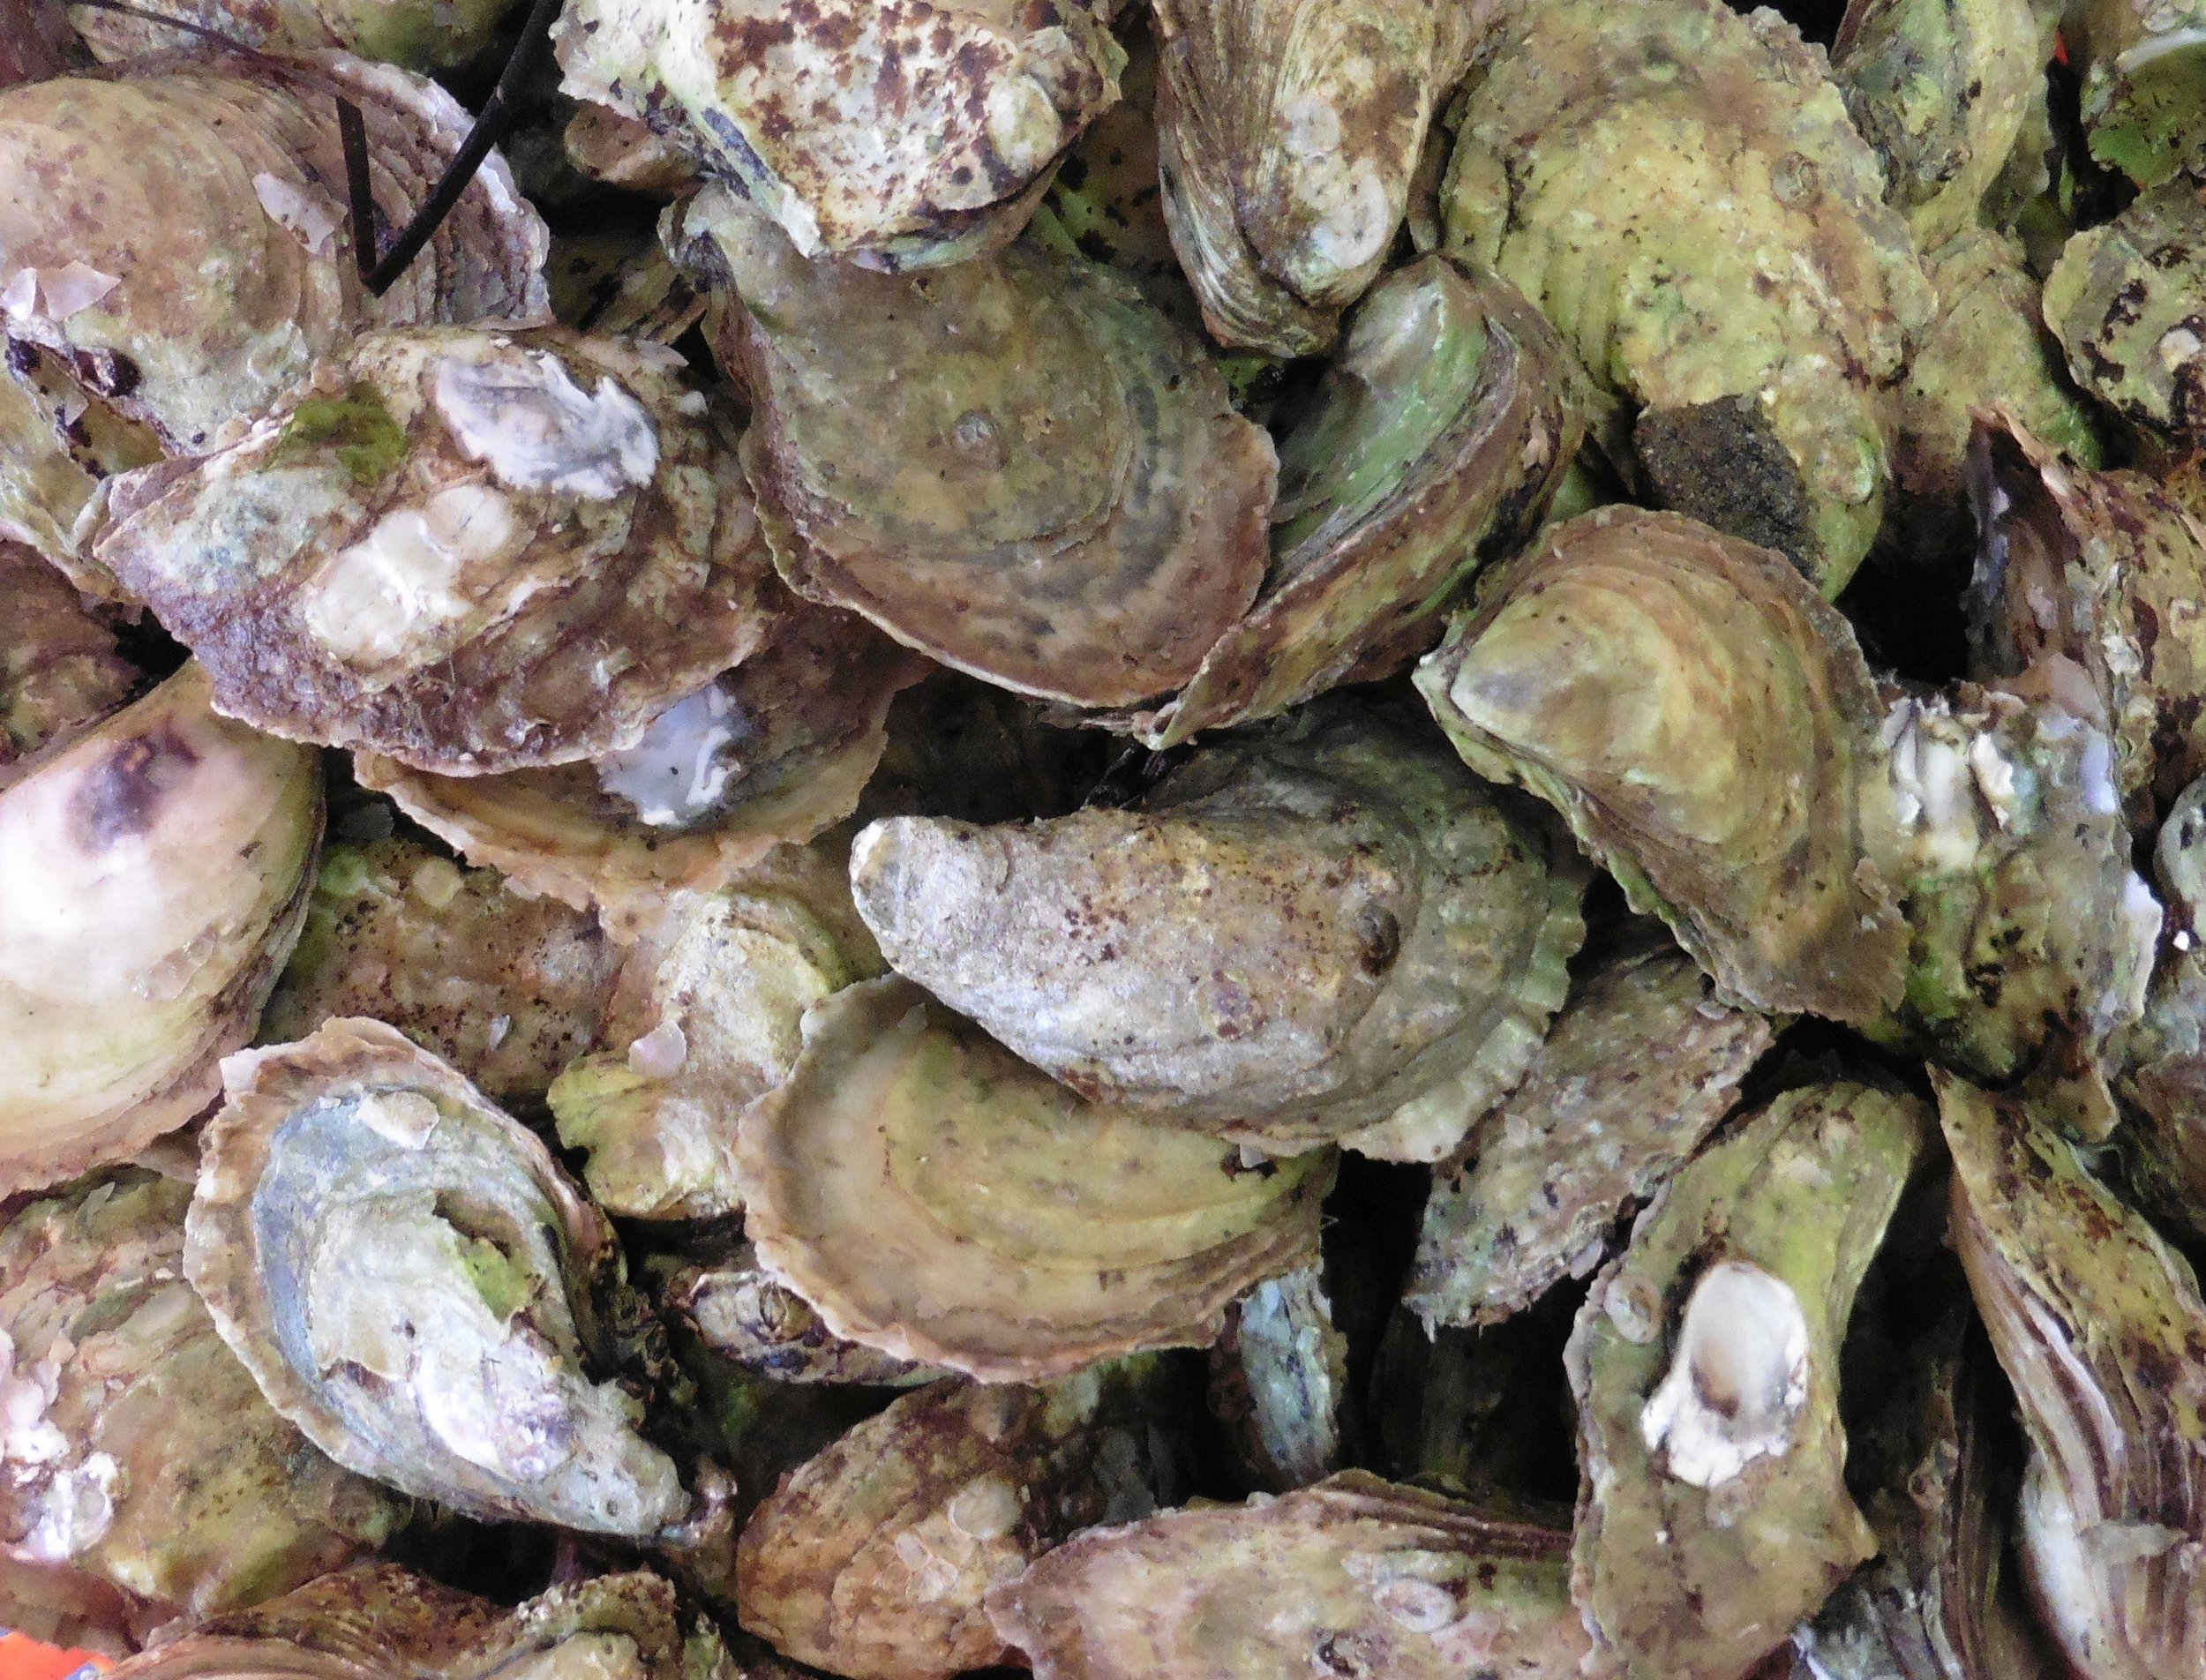 free oyster image from morguefile.jpg